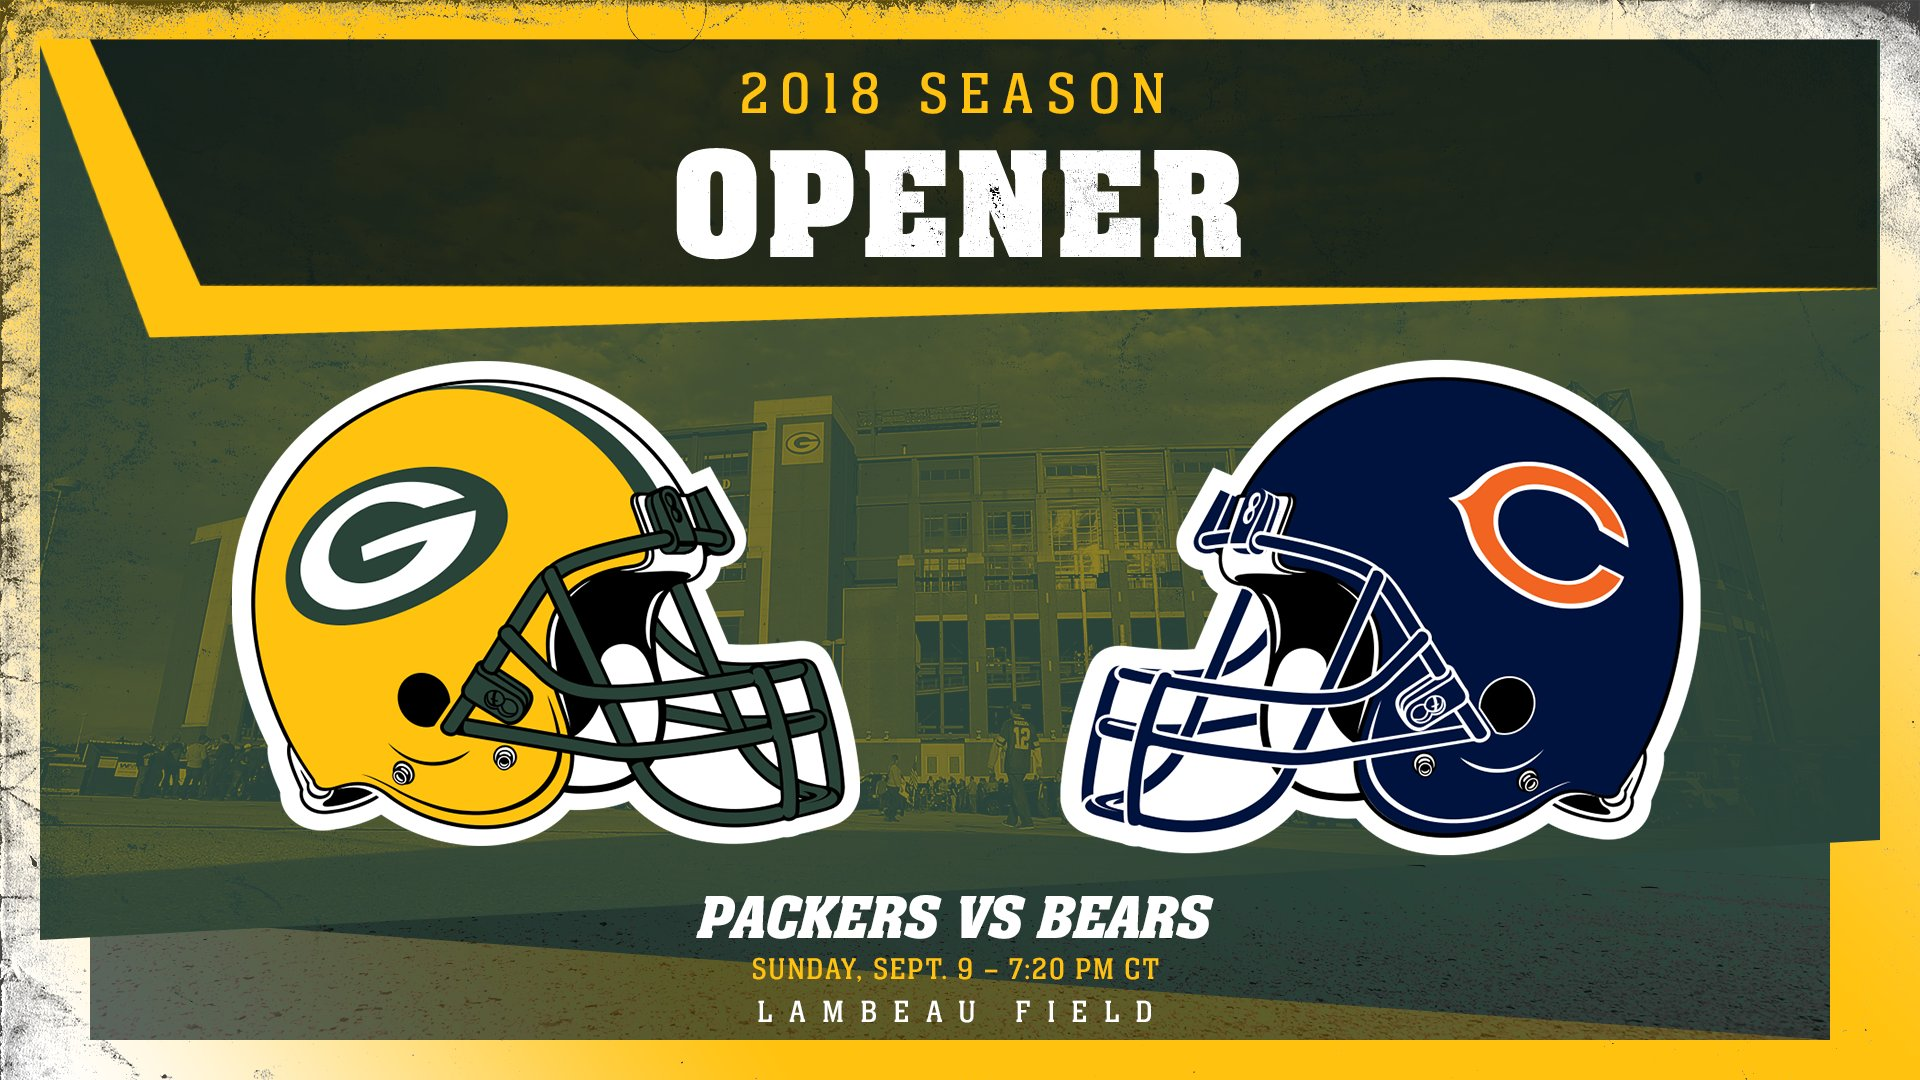 Our historic 100th season begins against our oldest rivals.   ��: https://t.co/CZtmYfCGXE   #Packers100 #GoPackGo https://t.co/CiVGIykE9X